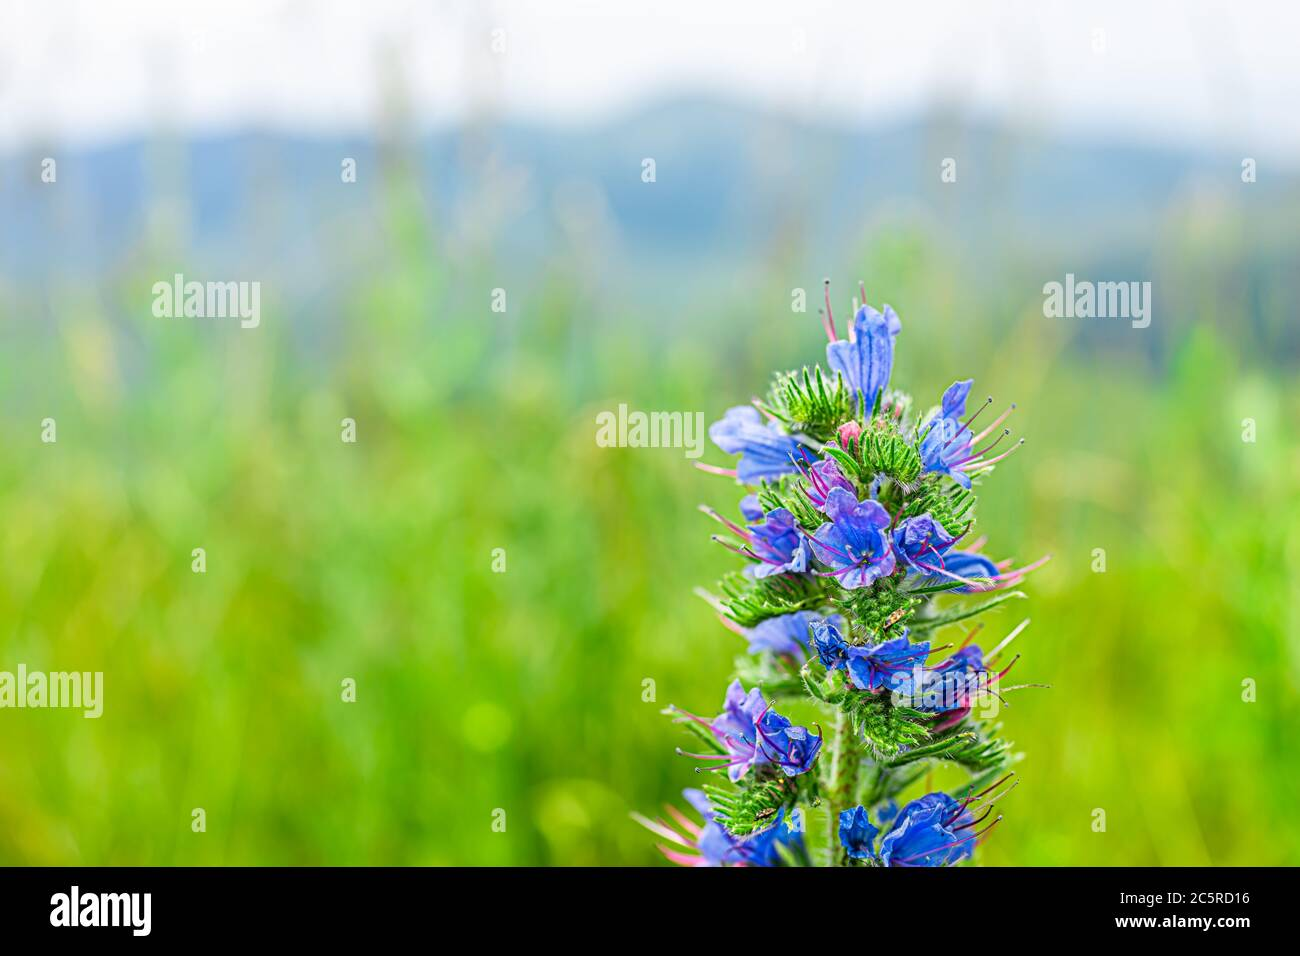 Macro closeup of purple blue viper's bugloss wild wildflowers flowers in summer in Shenandoah National Park in Virginia, USA with Blue Ridge Mountains Stock Photo